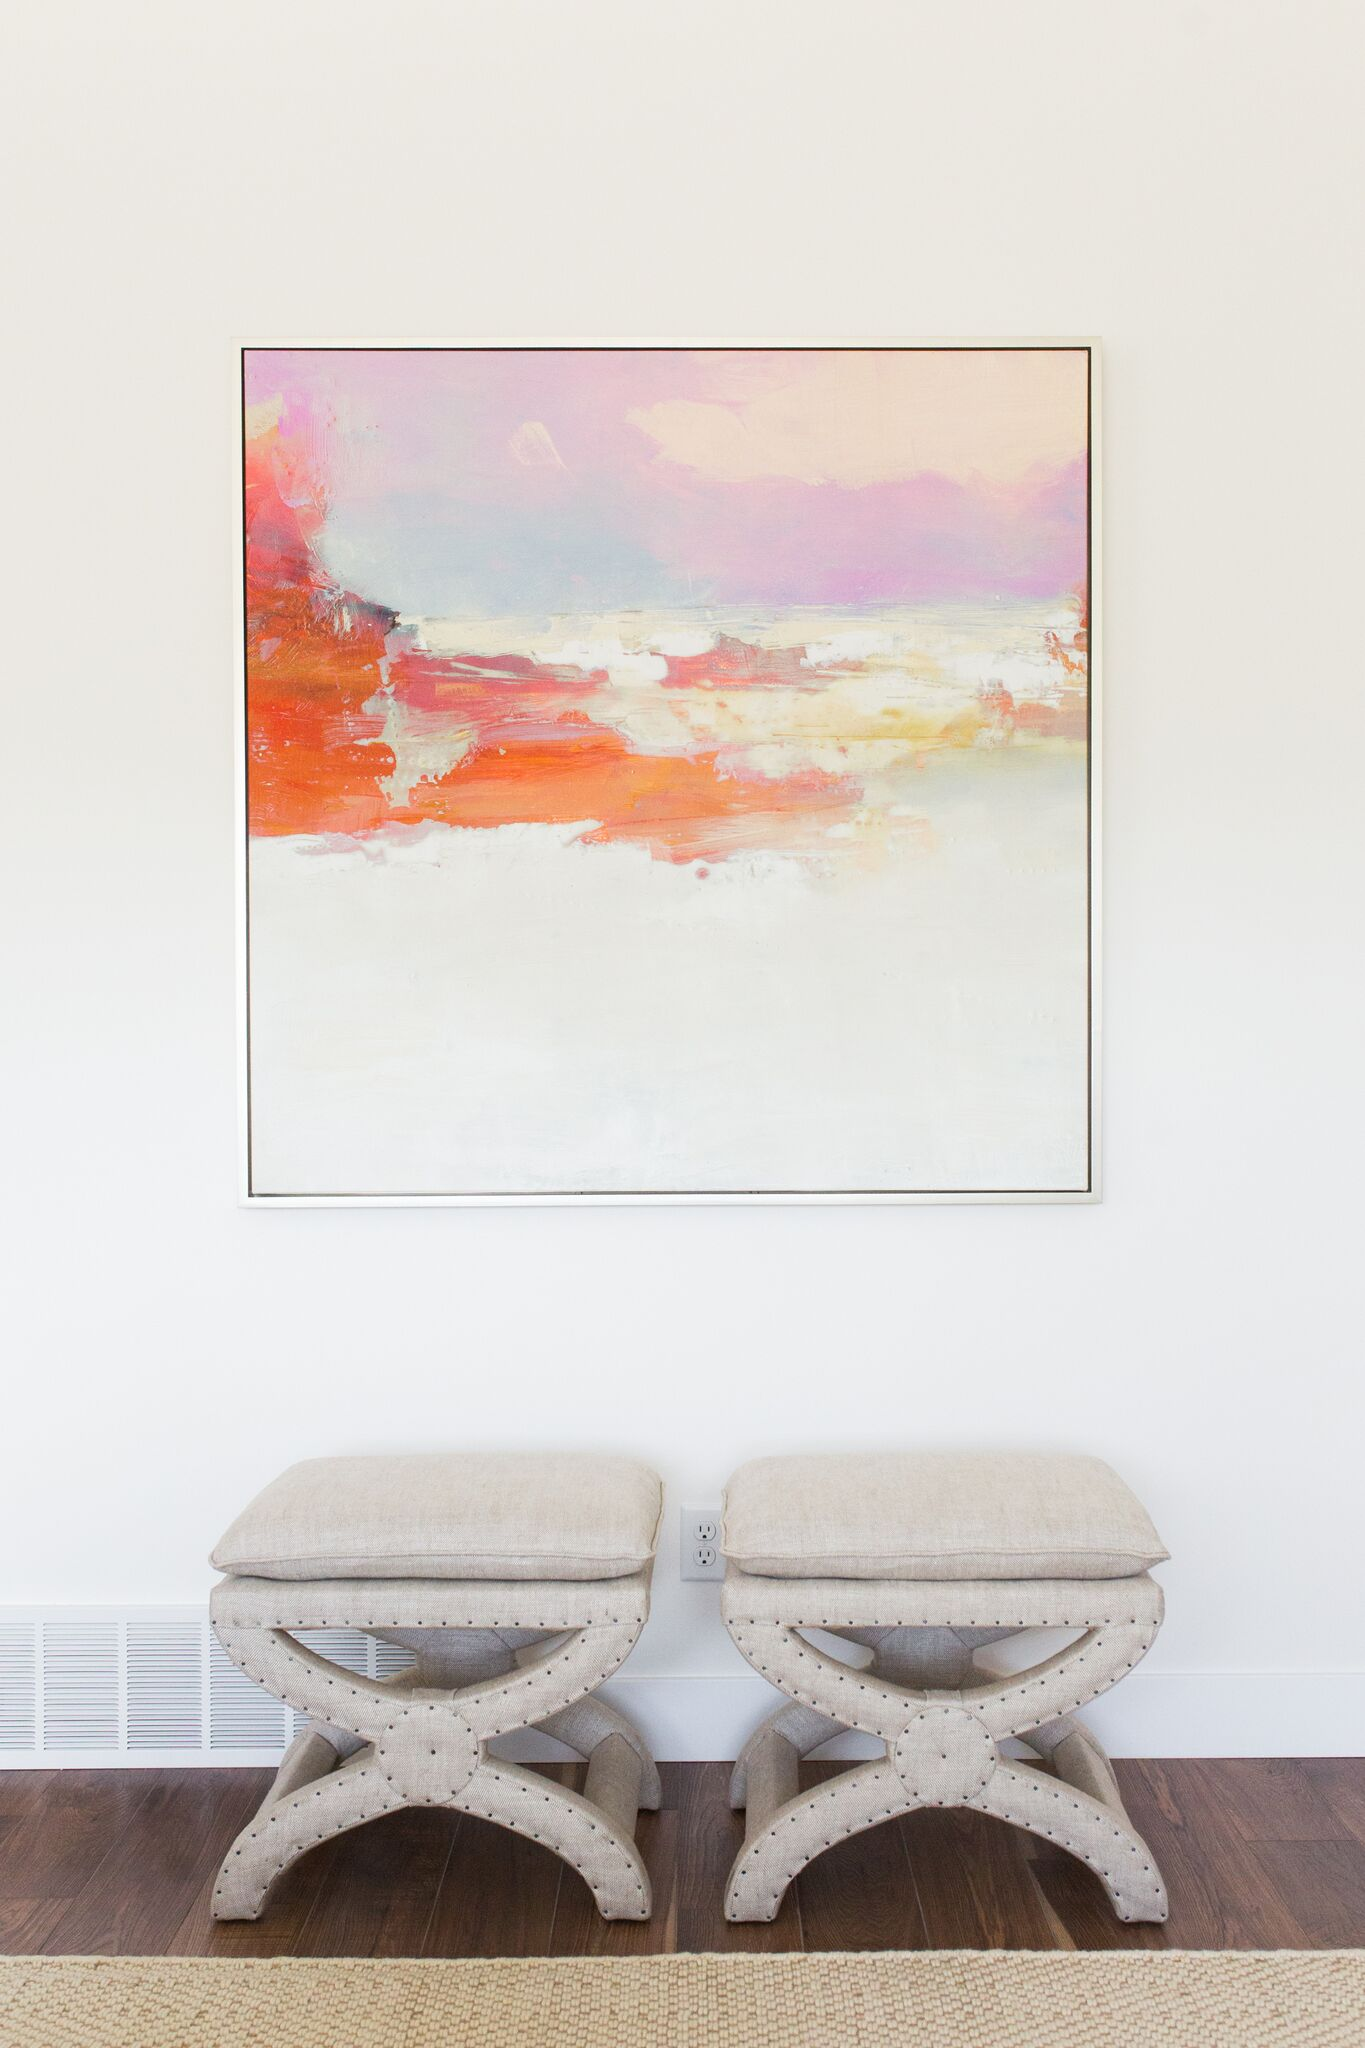 Two small, white stools with white cushions